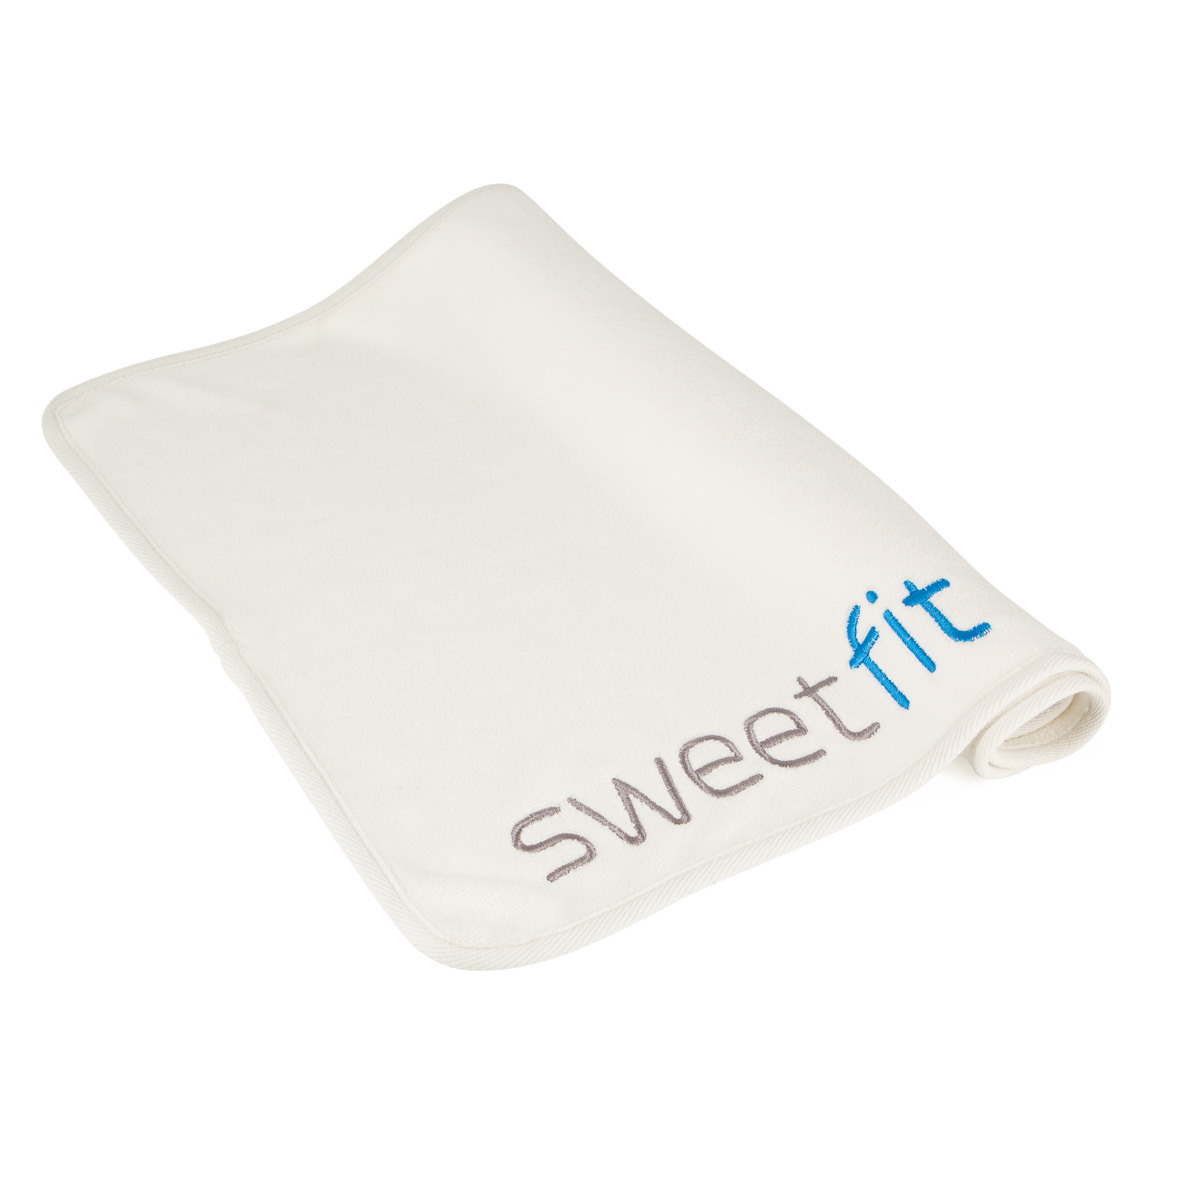 thumbnail 18 - Antibacterial-Gym-Towel-Fits-Securely-Over-Workout-Bench-Phone-Keys-Zip-Pocket